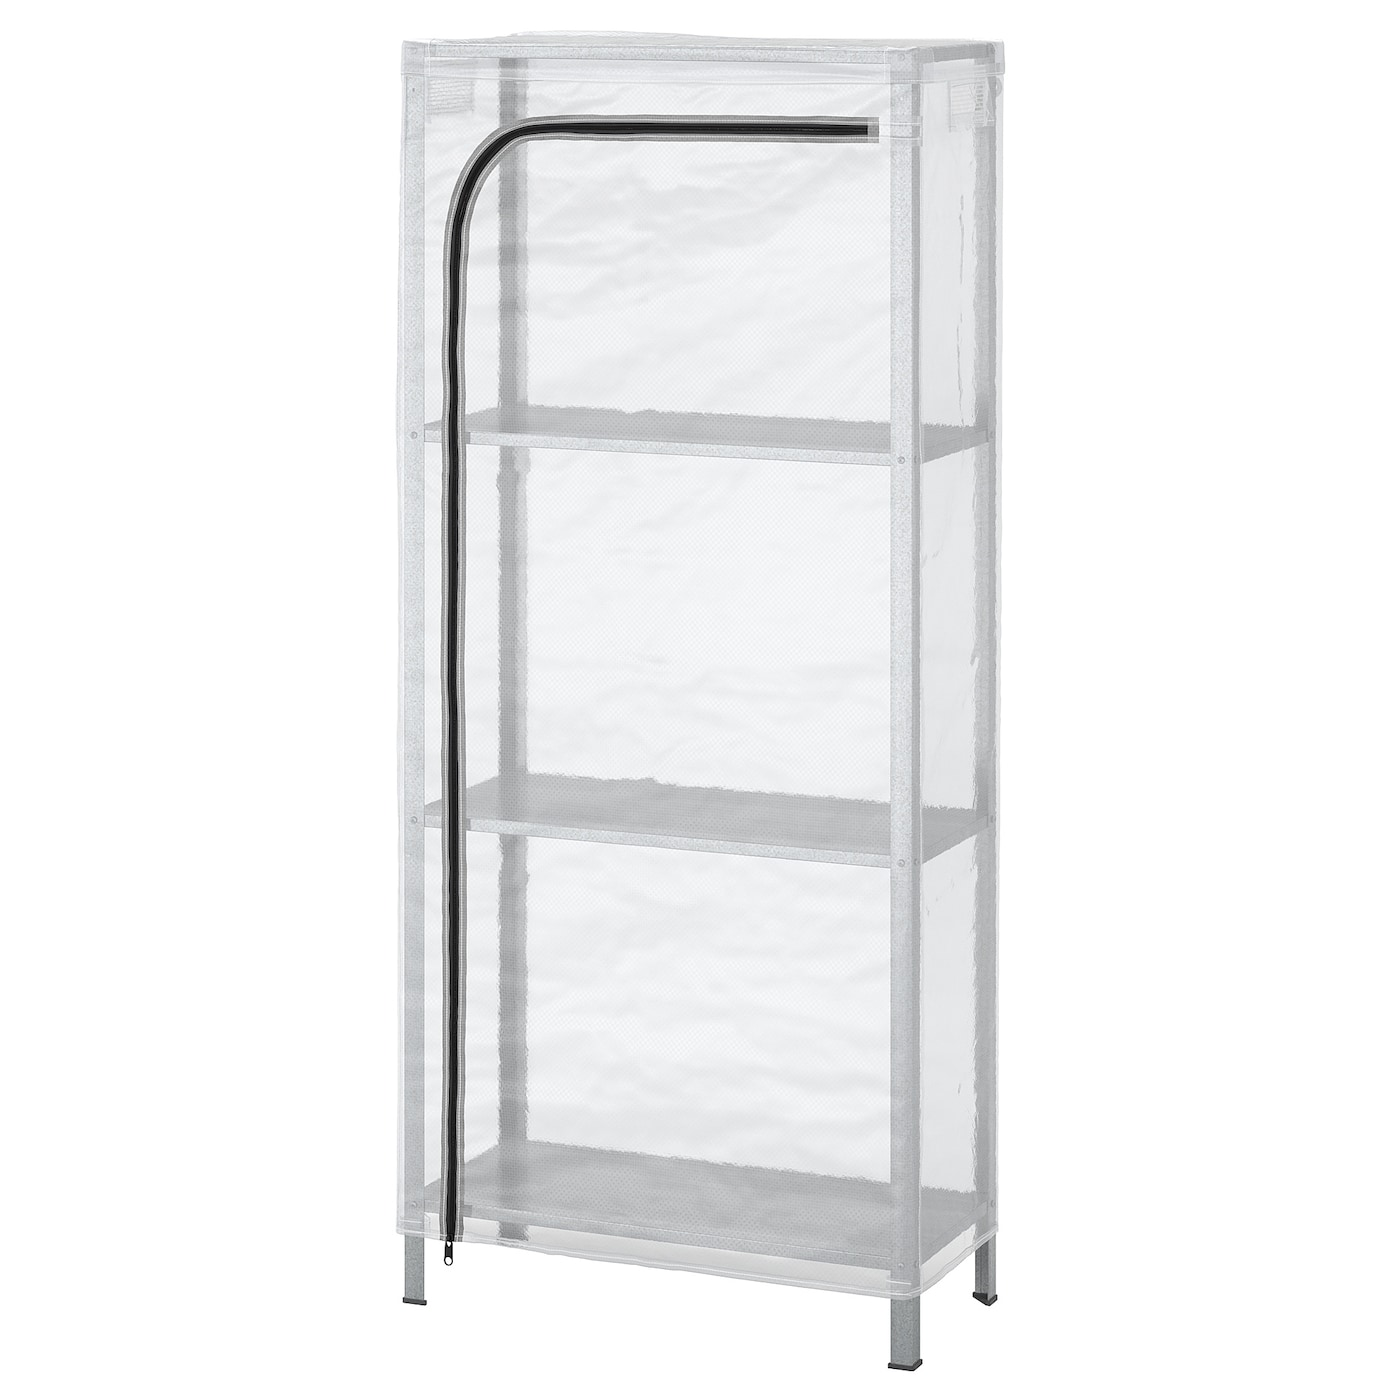 IKEA HYLLIS shelving unit with cover